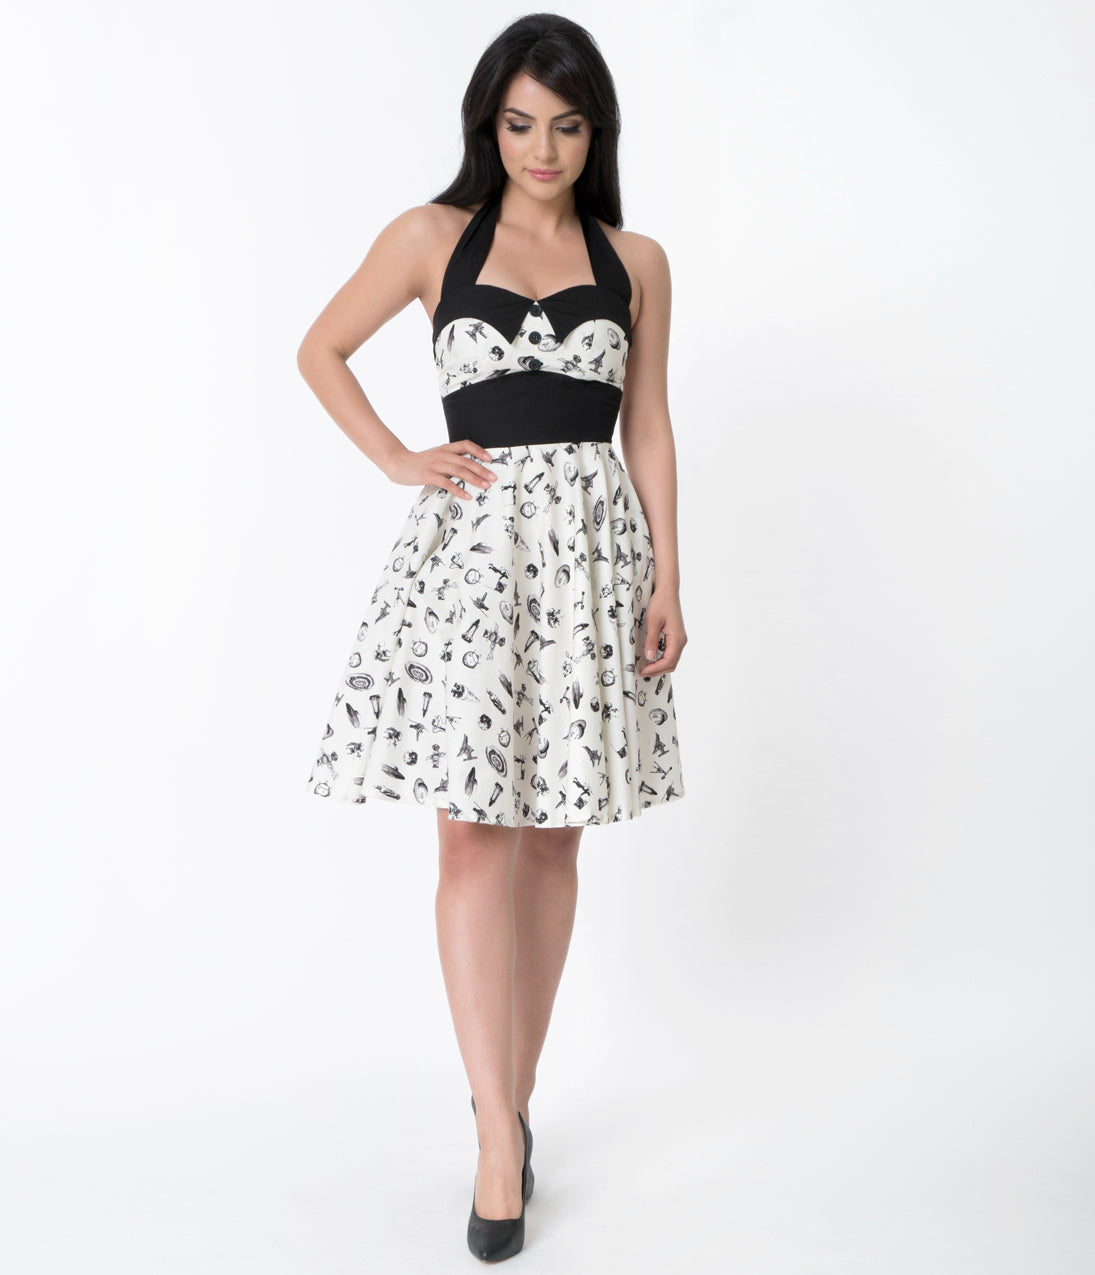 Rockabilly Dresses | Rockabilly Clothing | Viva Las Vegas 1950S Style Ivory  Black Space Print Ashley Halter Top Swing Dress $68.00 AT vintagedancer.com